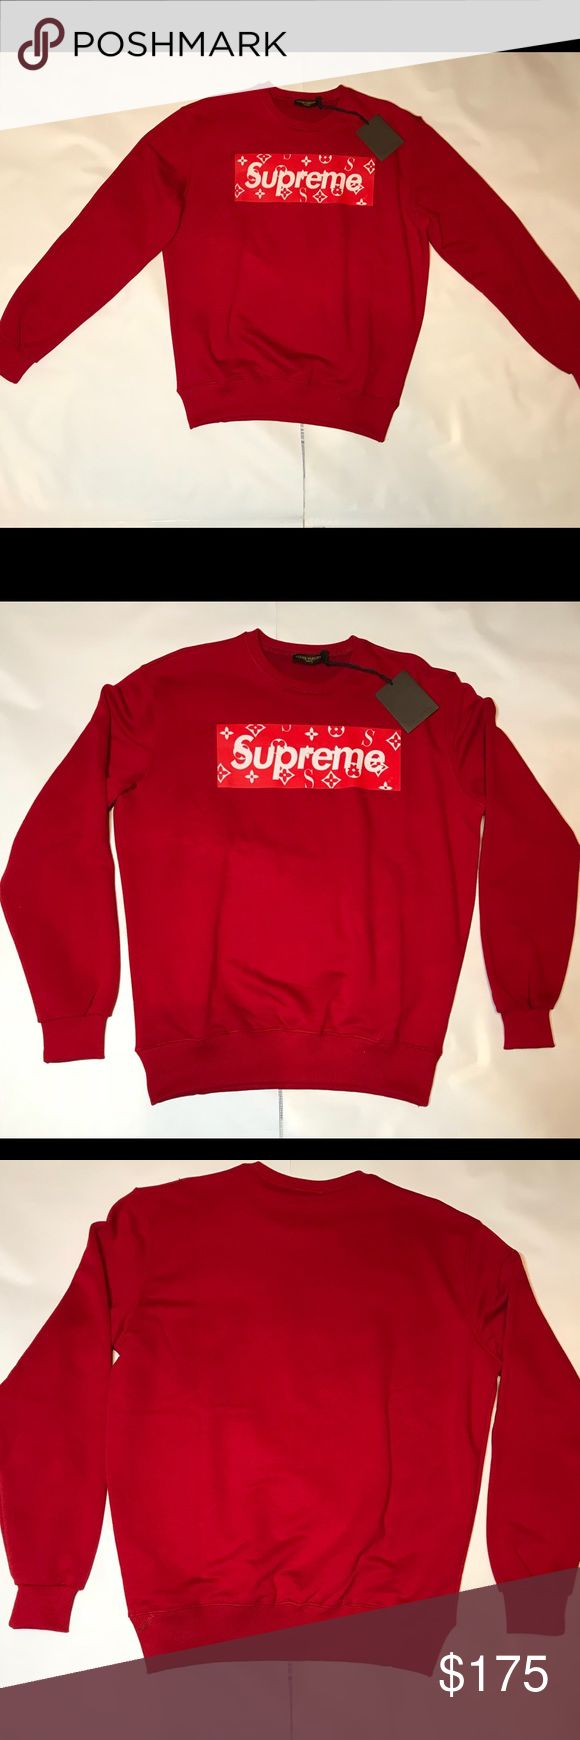 Louis Vuitton Supreme Sweater > 3 and more purchase %10 discount > Express Shipping Providing > All sizes are available  > Brand-new with tags,never used and worn > Louis Vuitton Supreme Collection  > Take a glance at my closet for more... > Feel free to ask question > PLEASE MAKE REASONABLE OFFER > Have a nice shop 😊 Supreme Sweaters